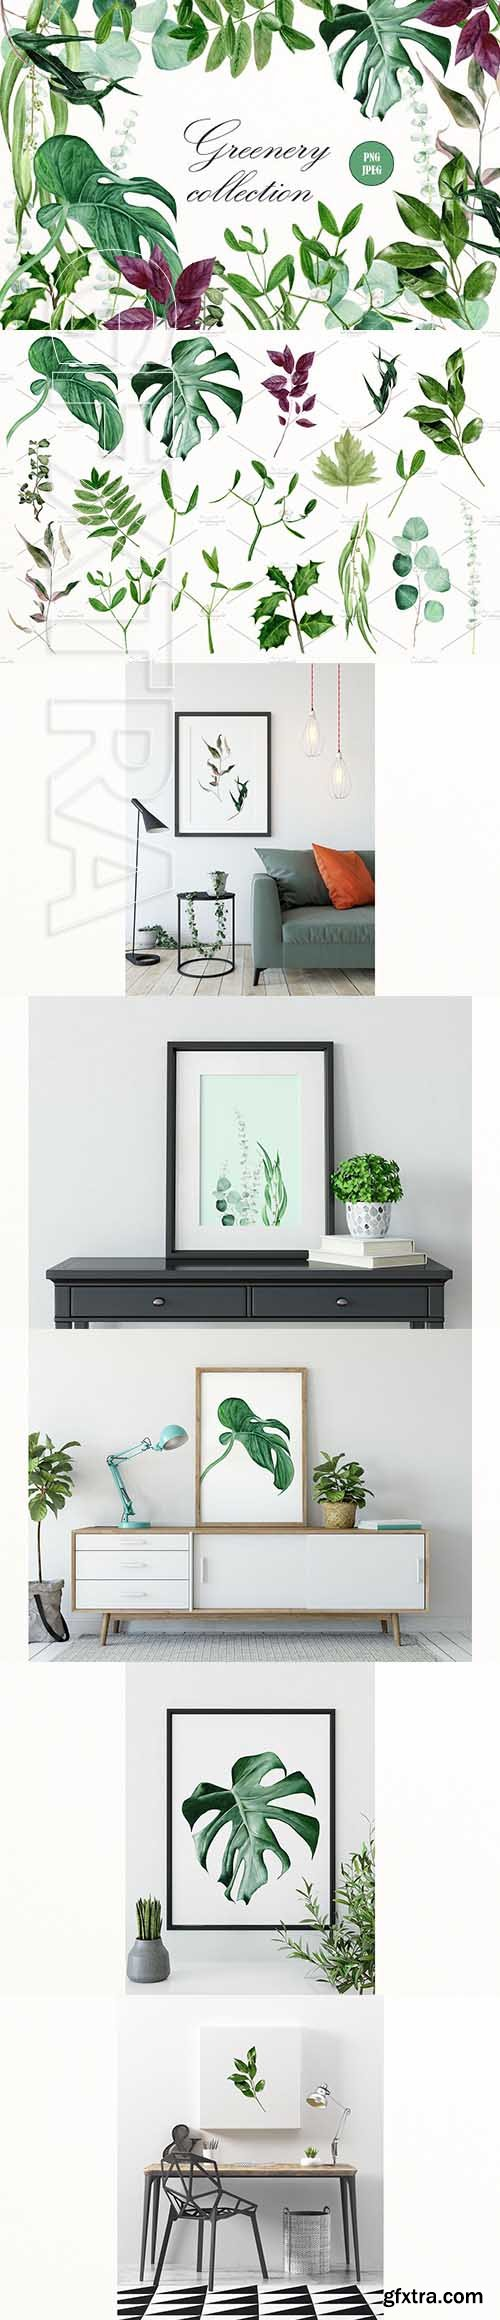 CreativeMarket - Greenery watercolor collection 2579060